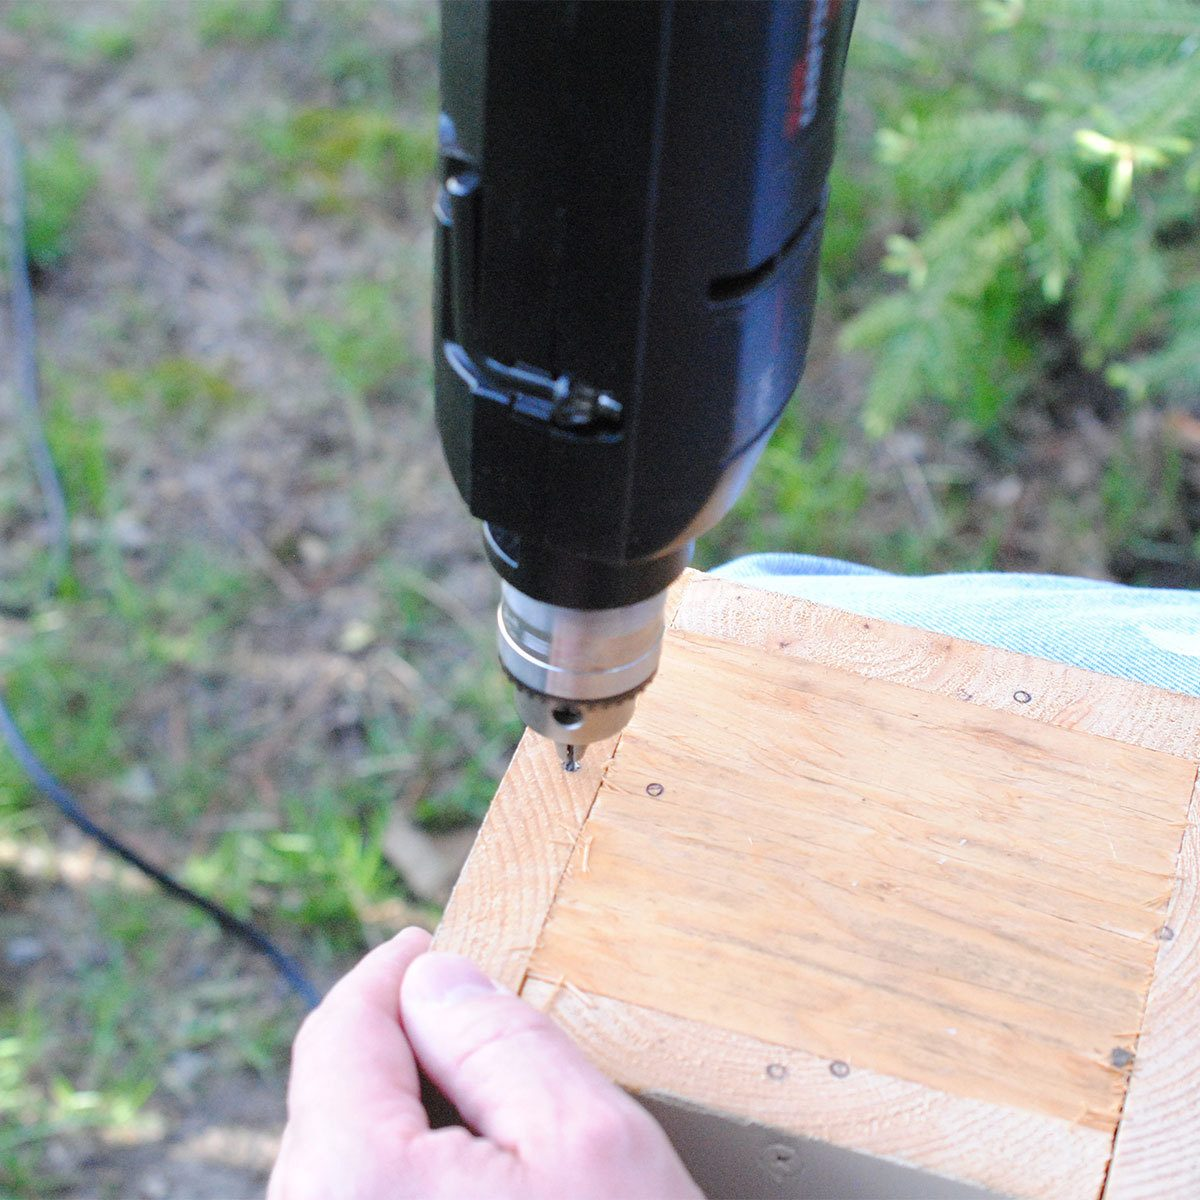 Drill holes into the birdhouse